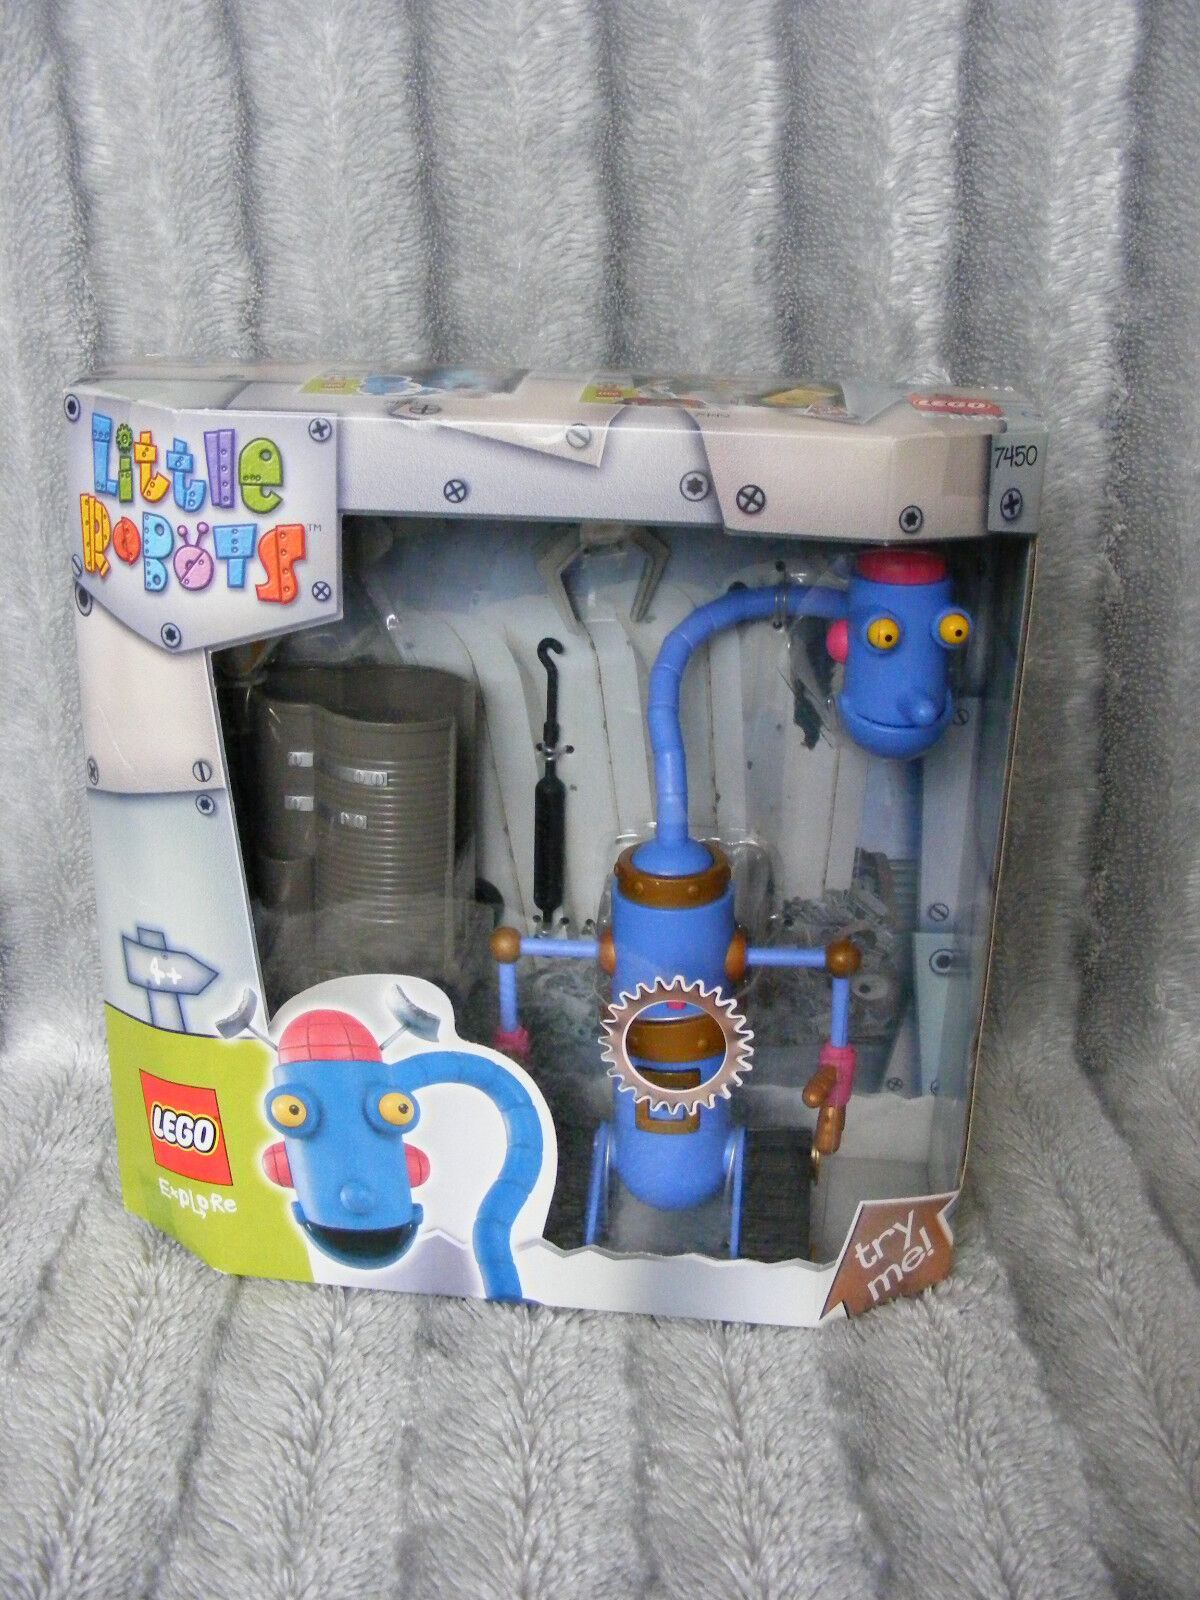 New Lego Explore Little Robots 7450 Stretchy Toy Create TV & Film Limited 2003